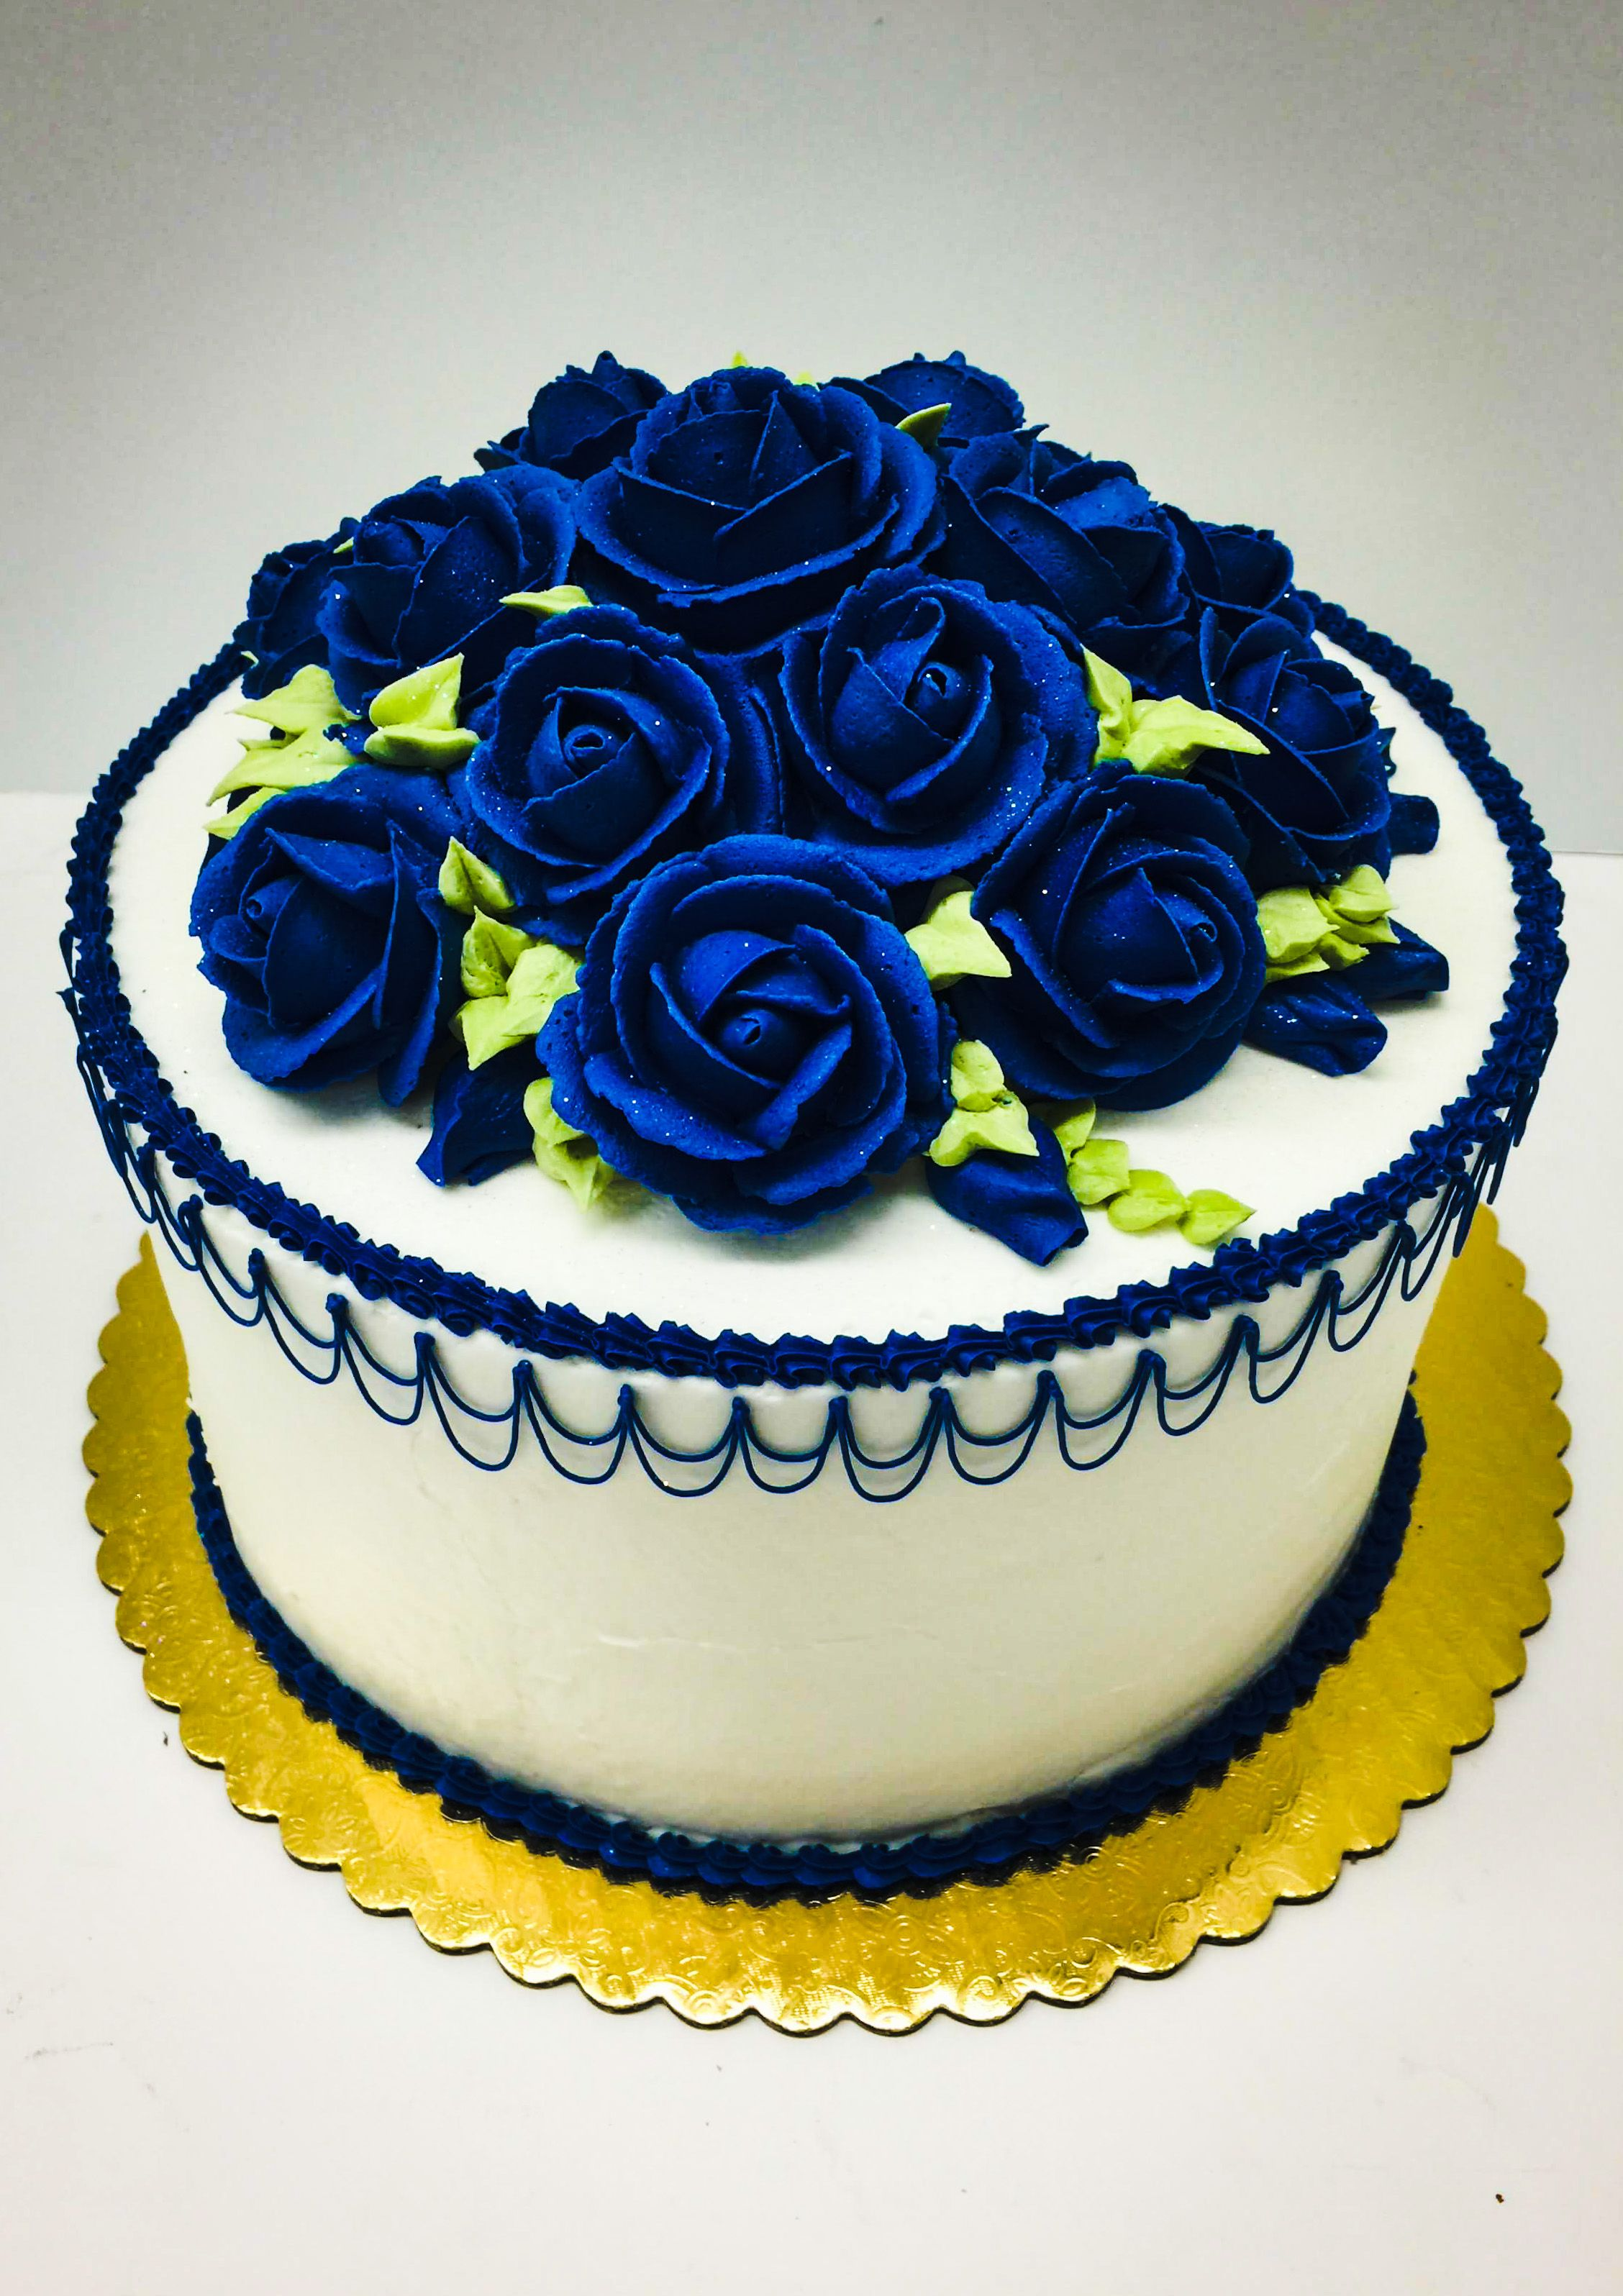 Blue Flower Birthday Cake Oregon Dairy Bakery 129 tags rose